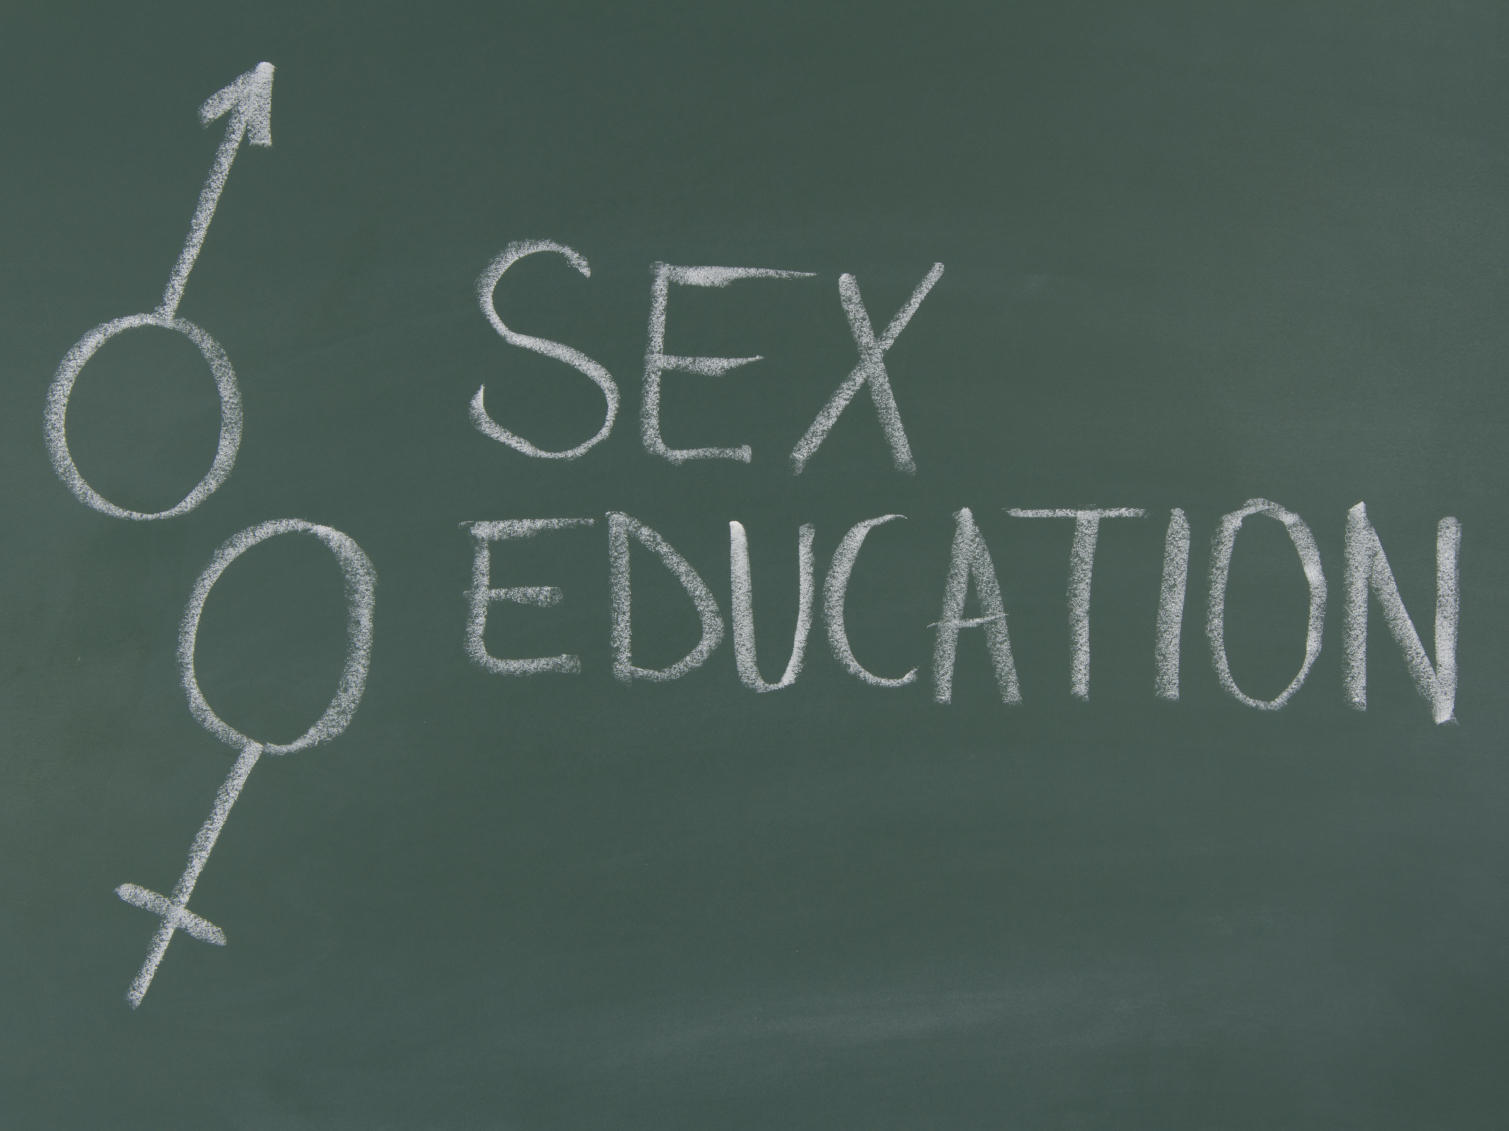 sex education programs Which type of sex education is right for there are several types of sex education programs available and selecting the best approach for teaching in school.